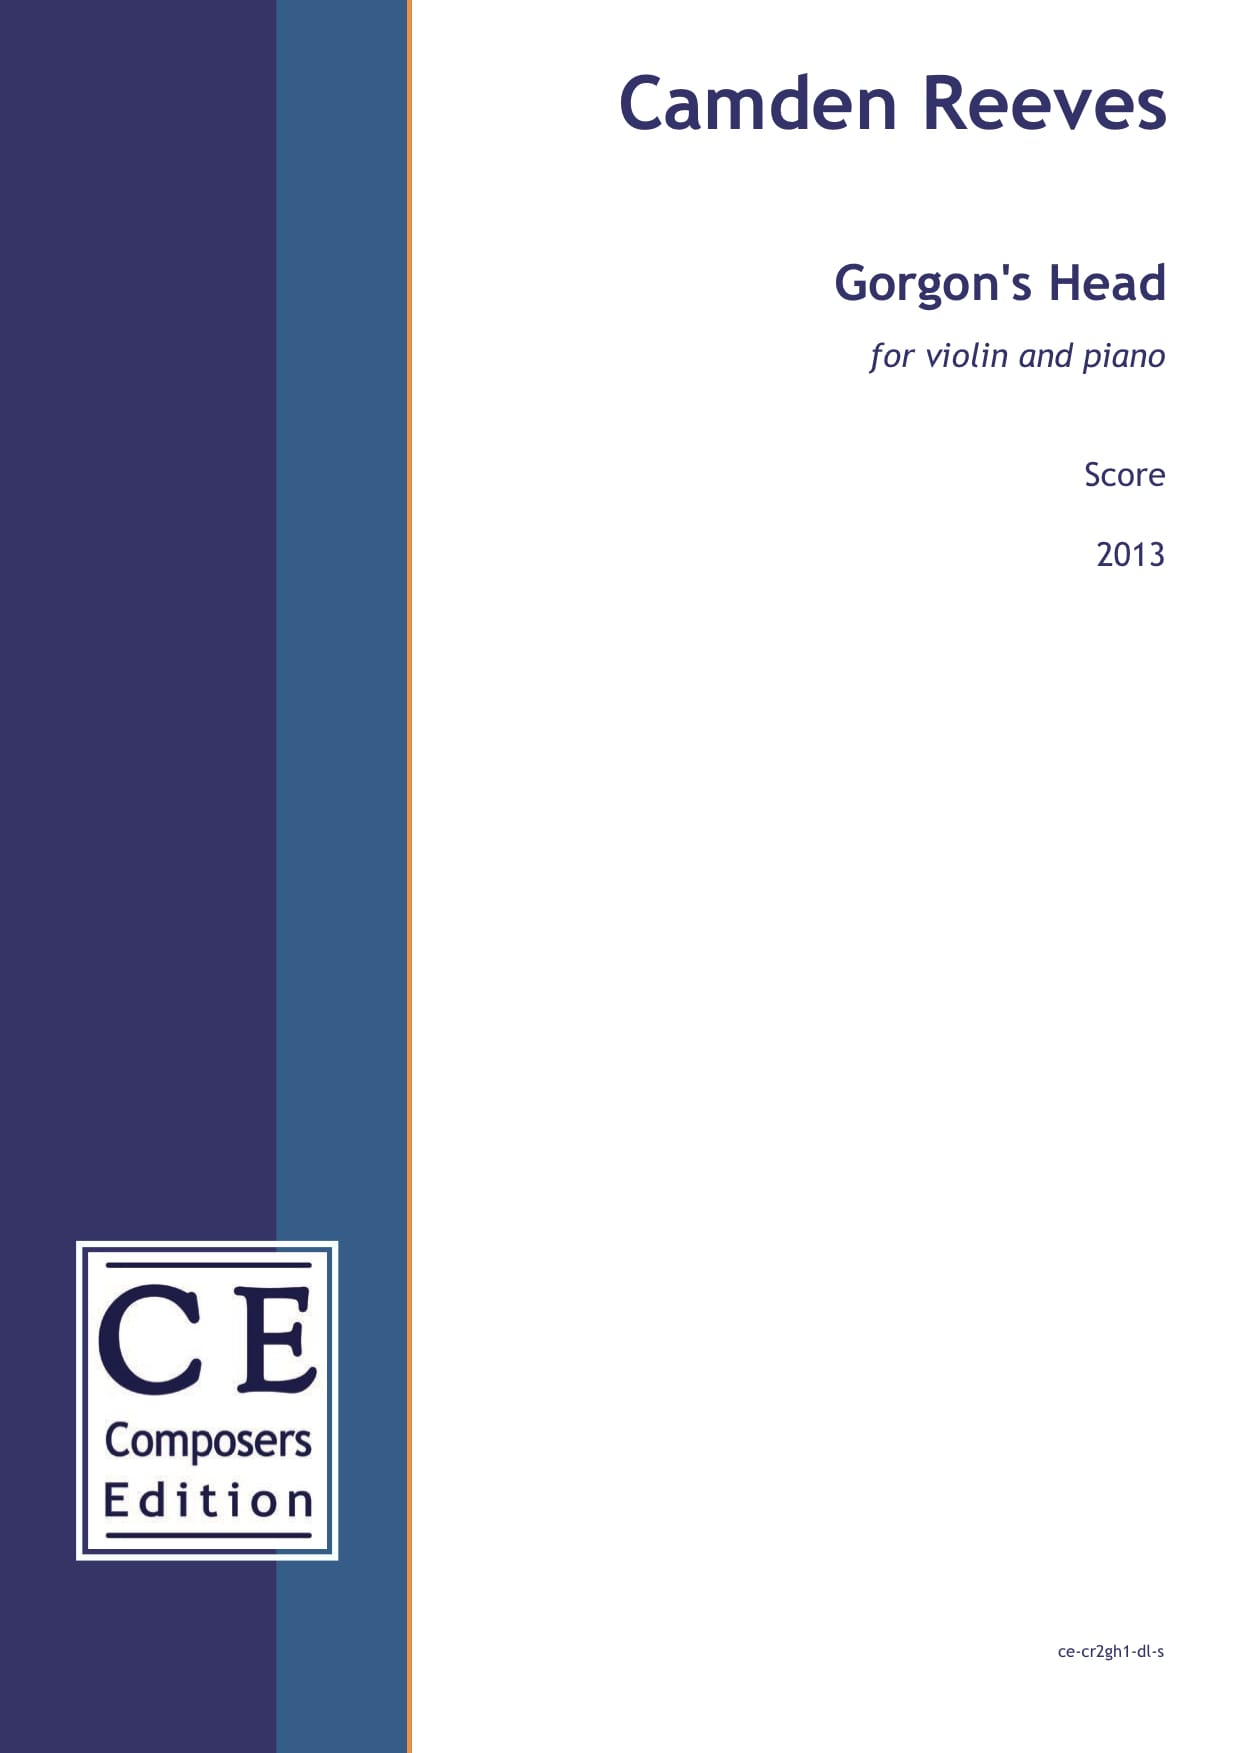 Camden Reeves: Gorgon's Head for violin and piano